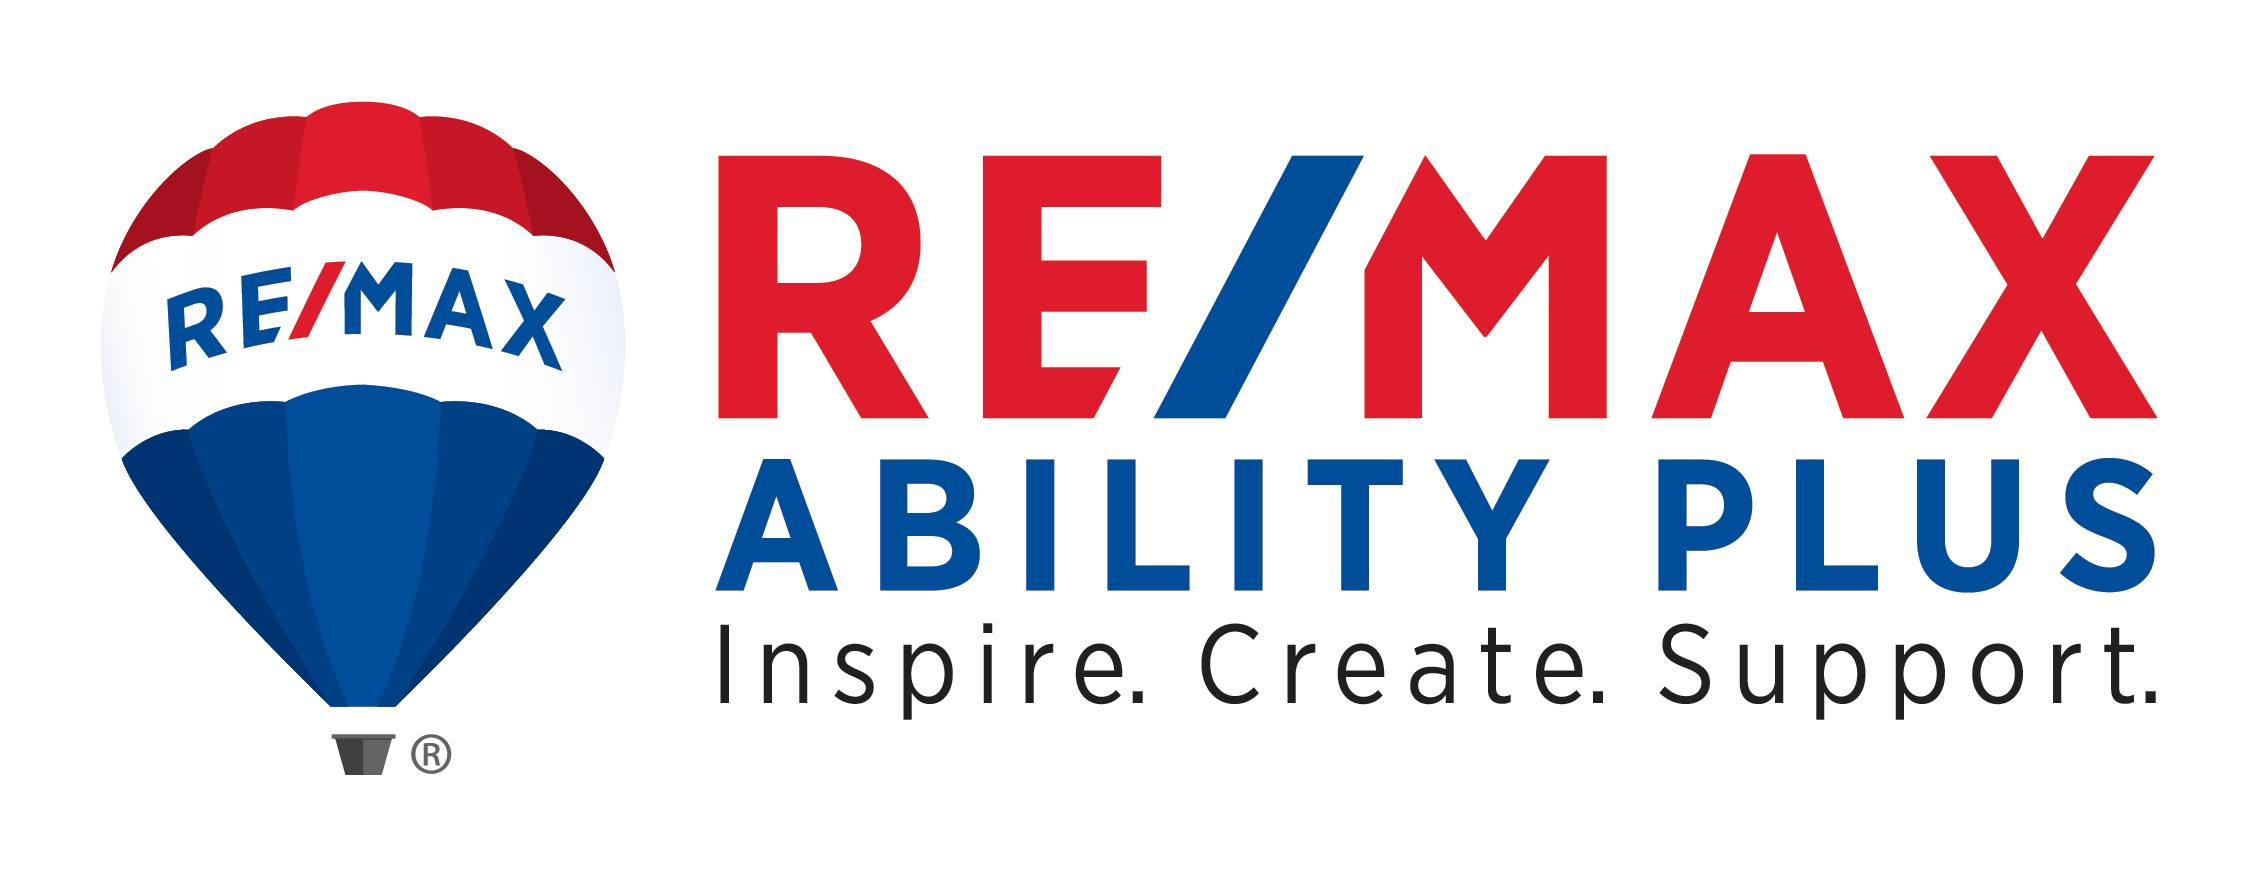 Sally Curwick | RE/MAX Ability Plus